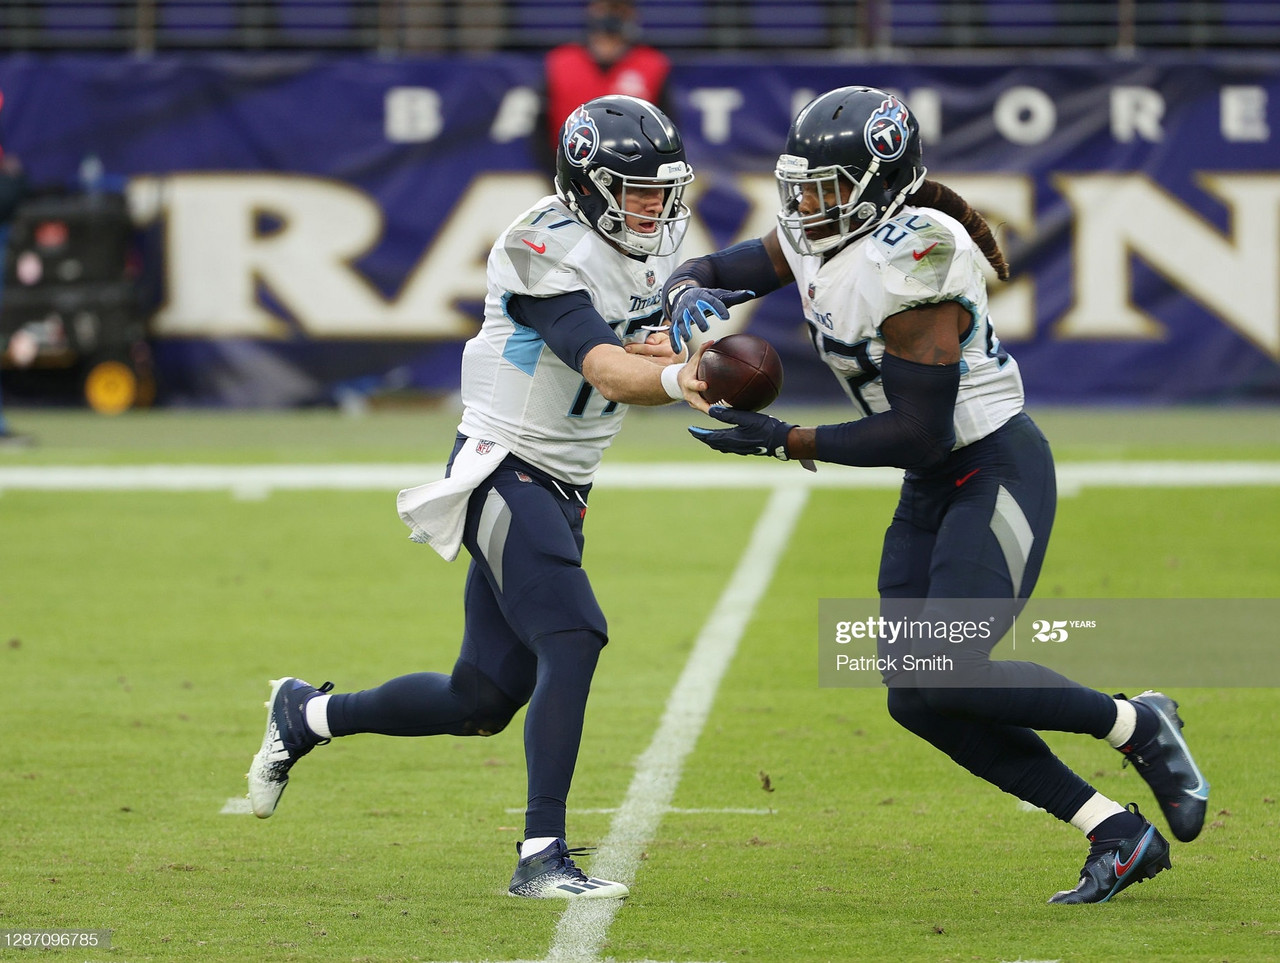 BALTIMORE, MARYLAND - NOVEMBER 22: A.J. Brown #11 of the Tennessee Titans runs against DeShon Elliott #32 of the Baltimore Ravens during the game at M&T Bank Stadium on November 22, 2020 in Baltimore, Maryland. (Photo by Patrick Smith/Getty Images)